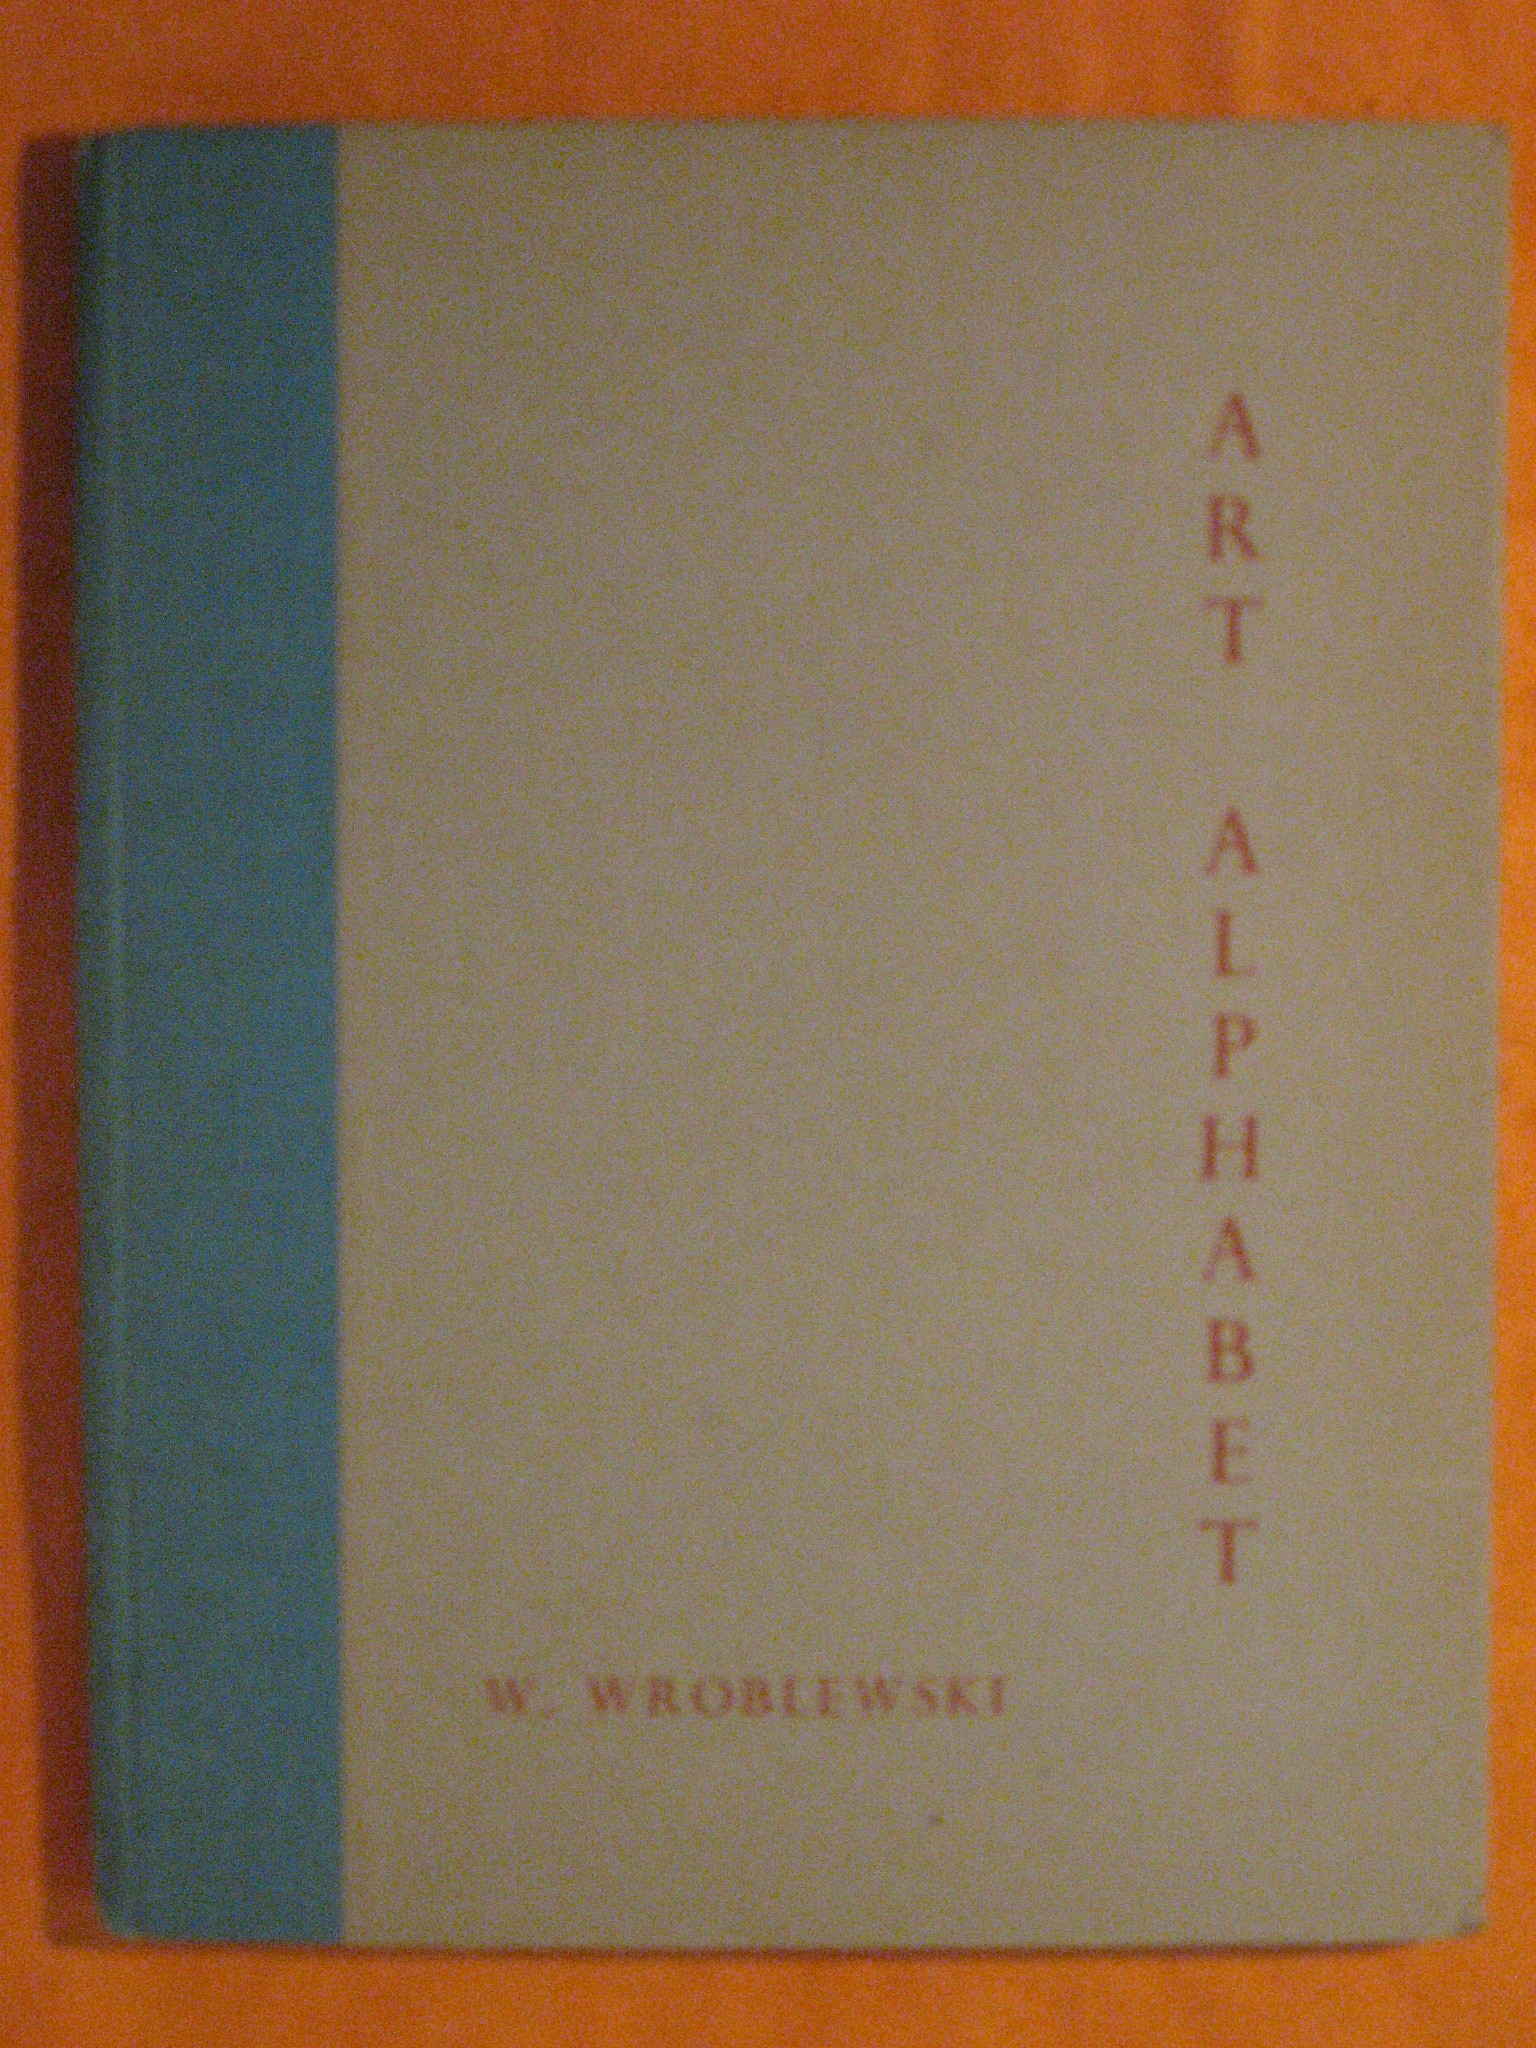 Art Alphabet and Its Relation to Cosmic Principles, Wroblewski, W.